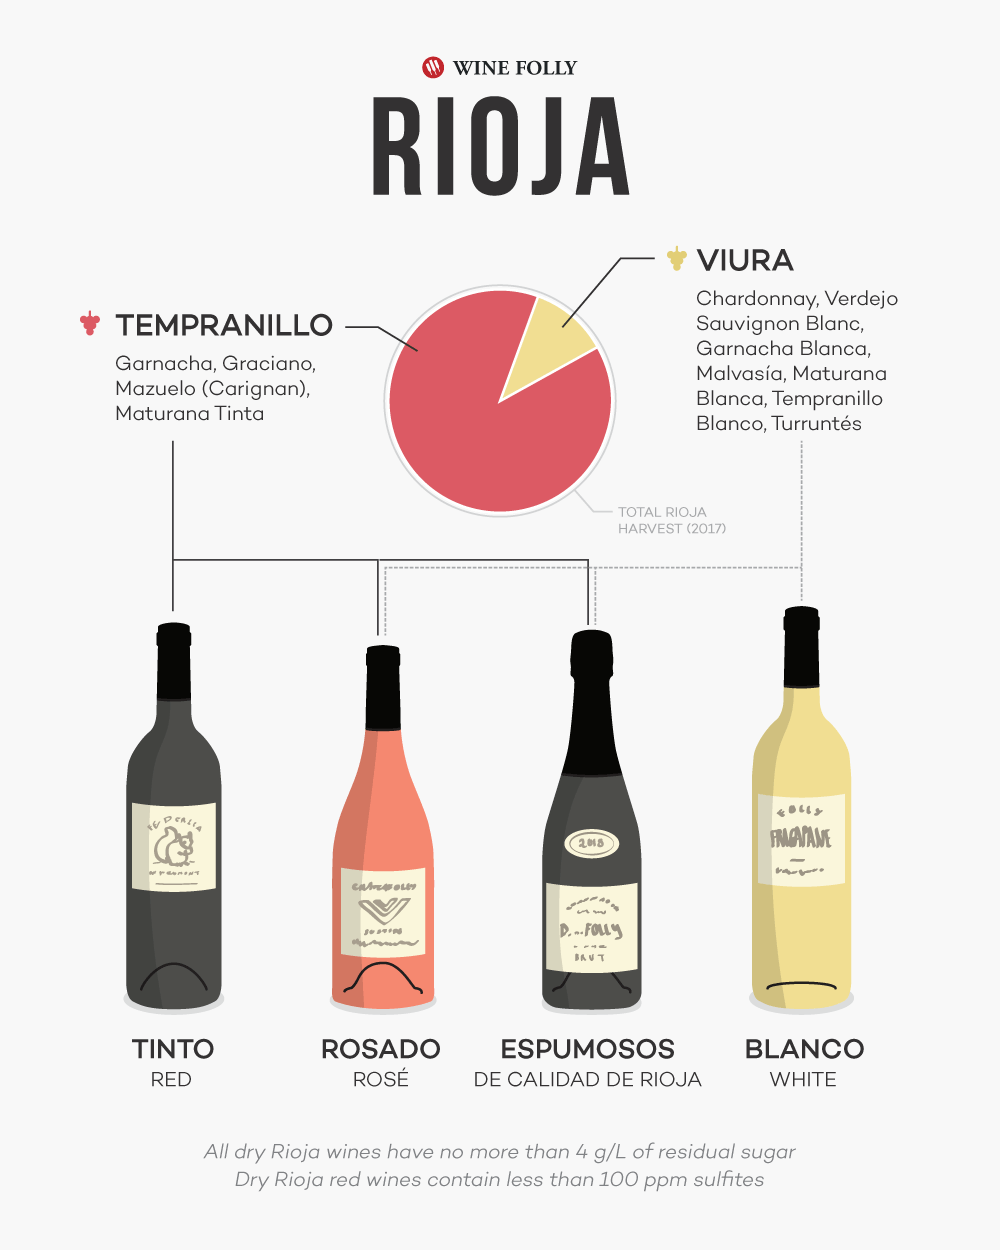 Types of Rioja wines including tinto, blanco, rosado, and espumoso - plus the primary grapes of Tempranillo and Viura (among others) by Wine Folly